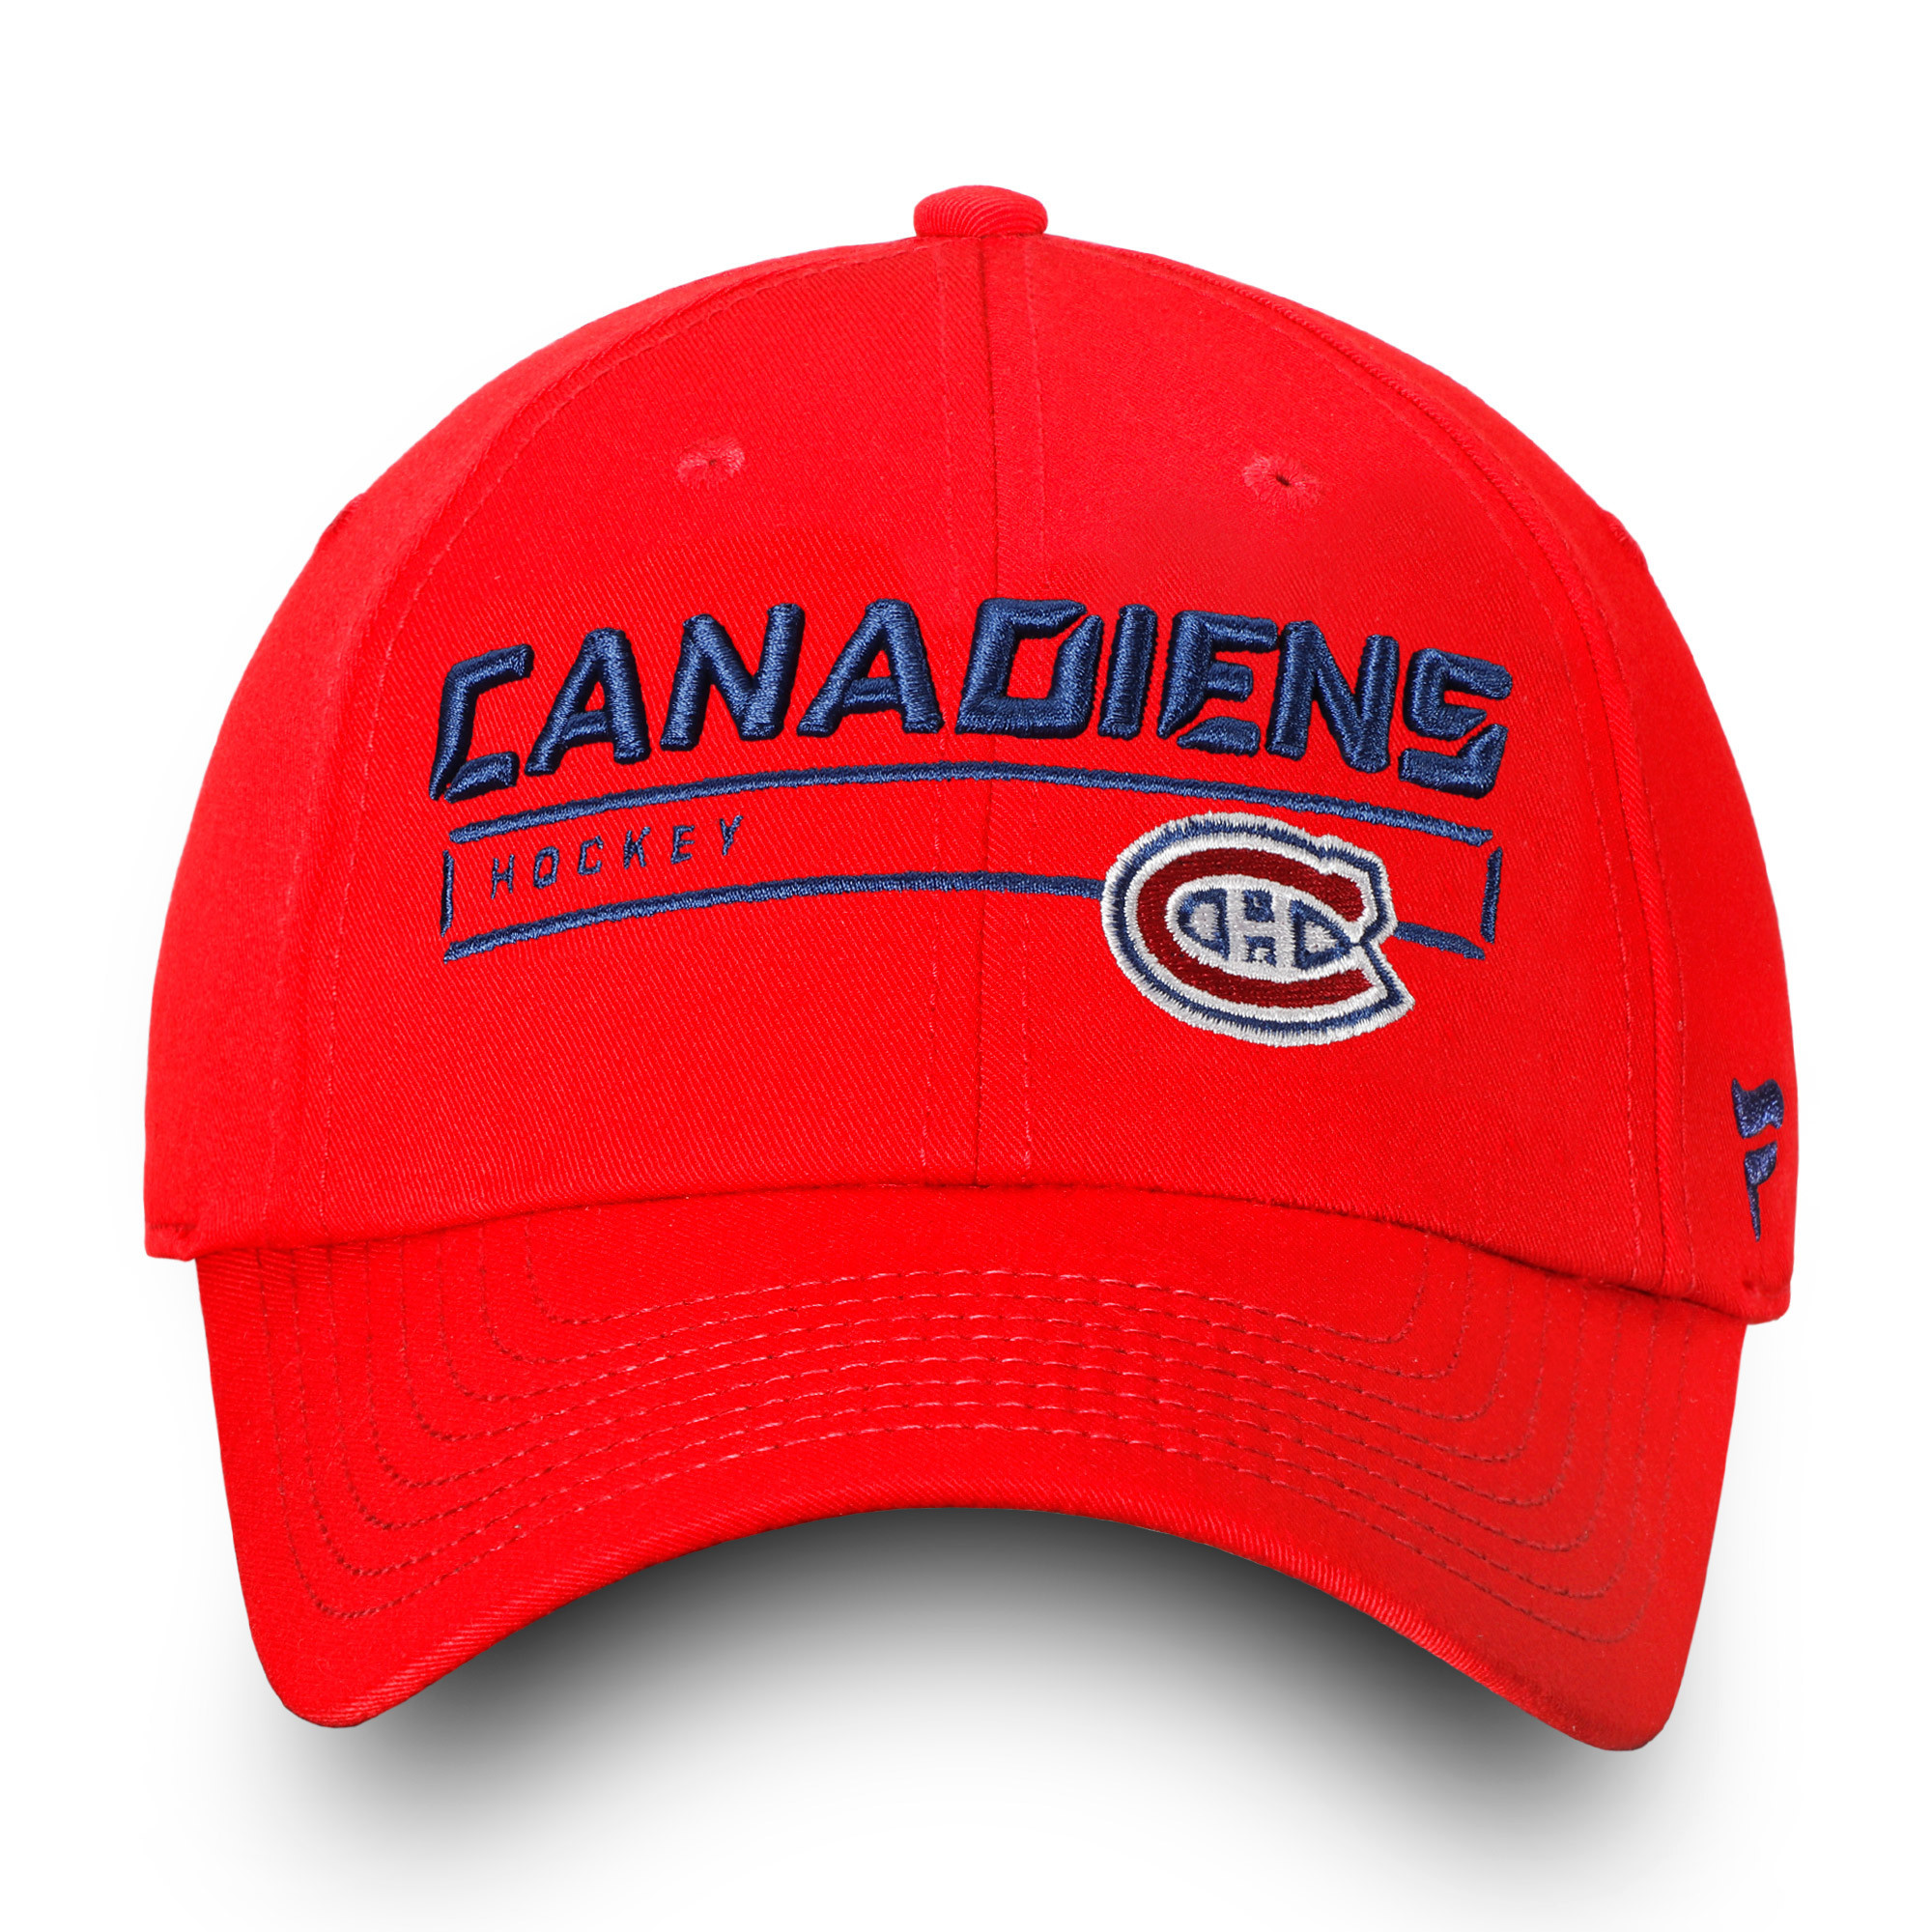 super popular abb8d 8807c ... ireland montreal canadiens fanatics branded authentic pro rinkside  fundamental adjustable hat red osfa walmart 27a63 3adbb